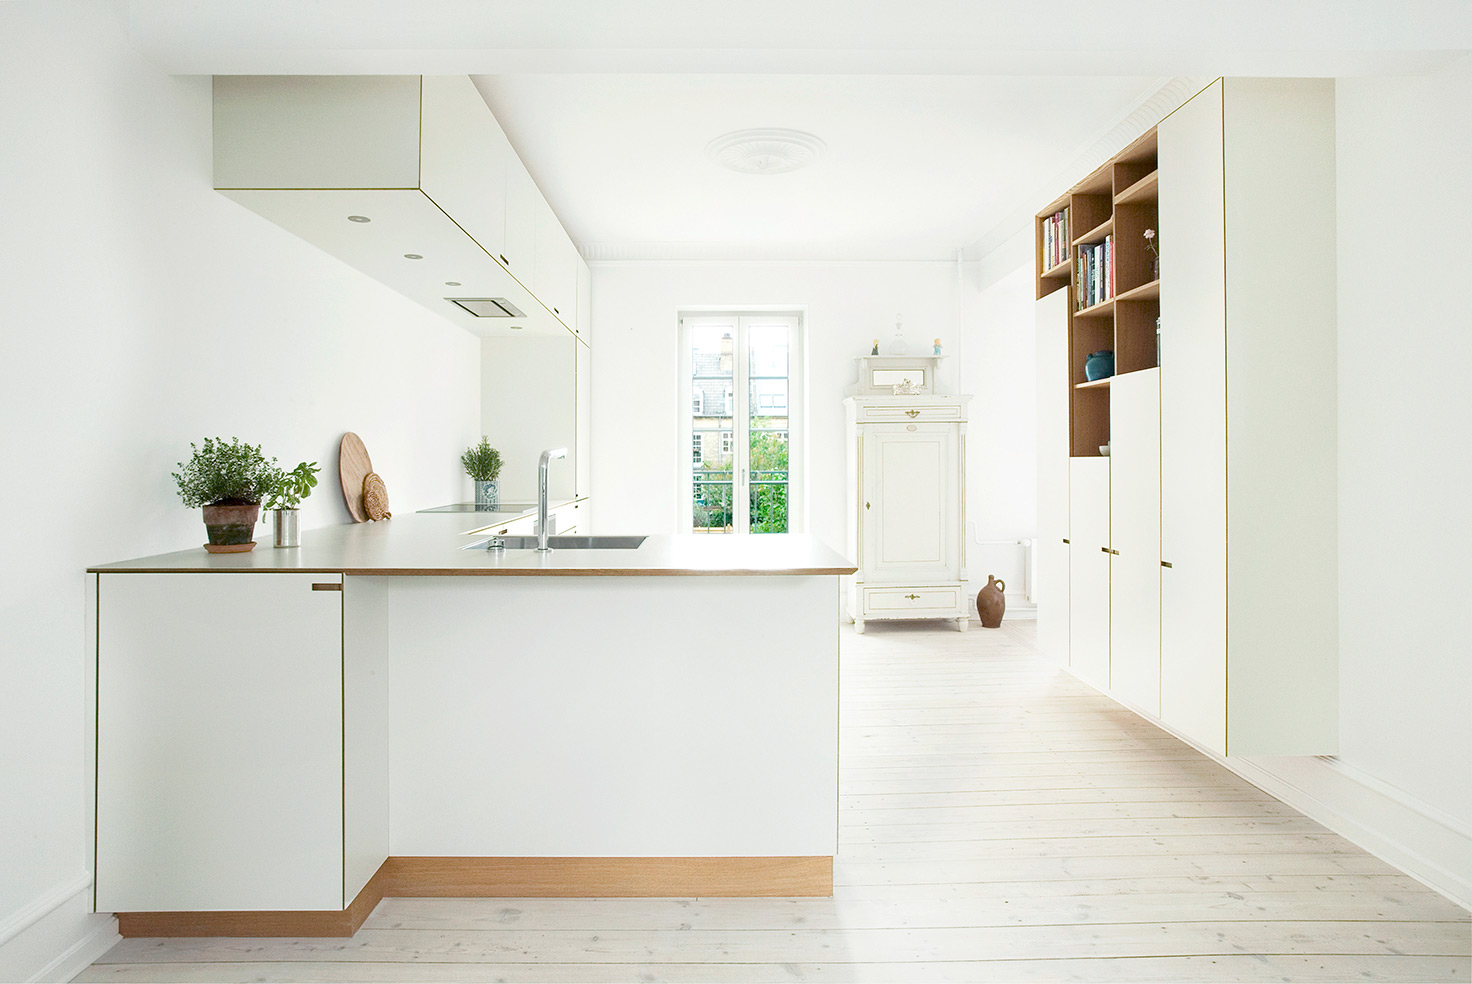 Minimalistic bespoke kitchen by Nicolaj Bo™